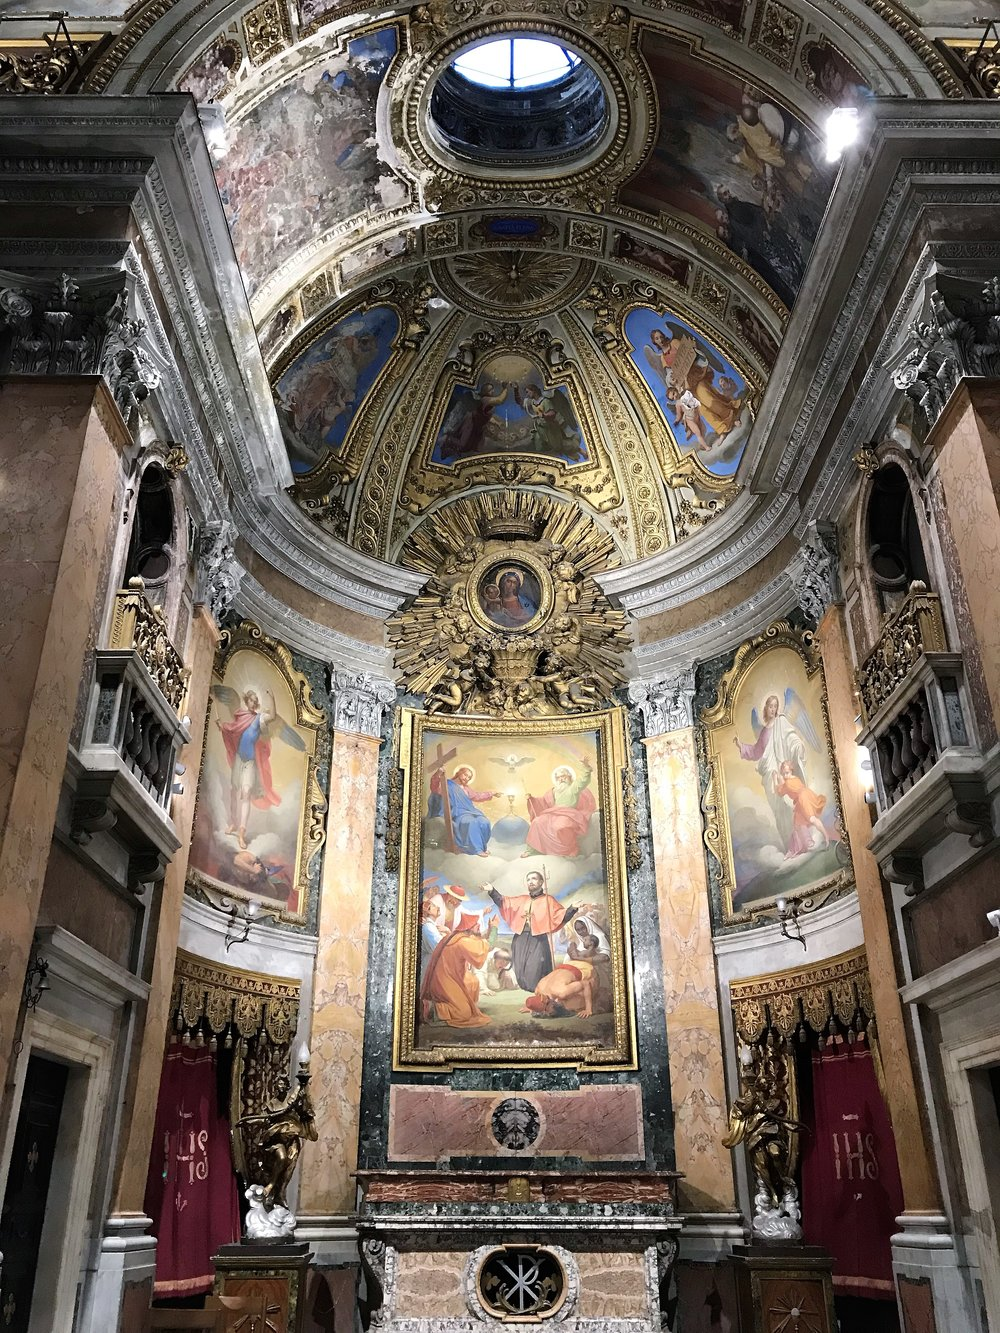 Inside a church in Rome